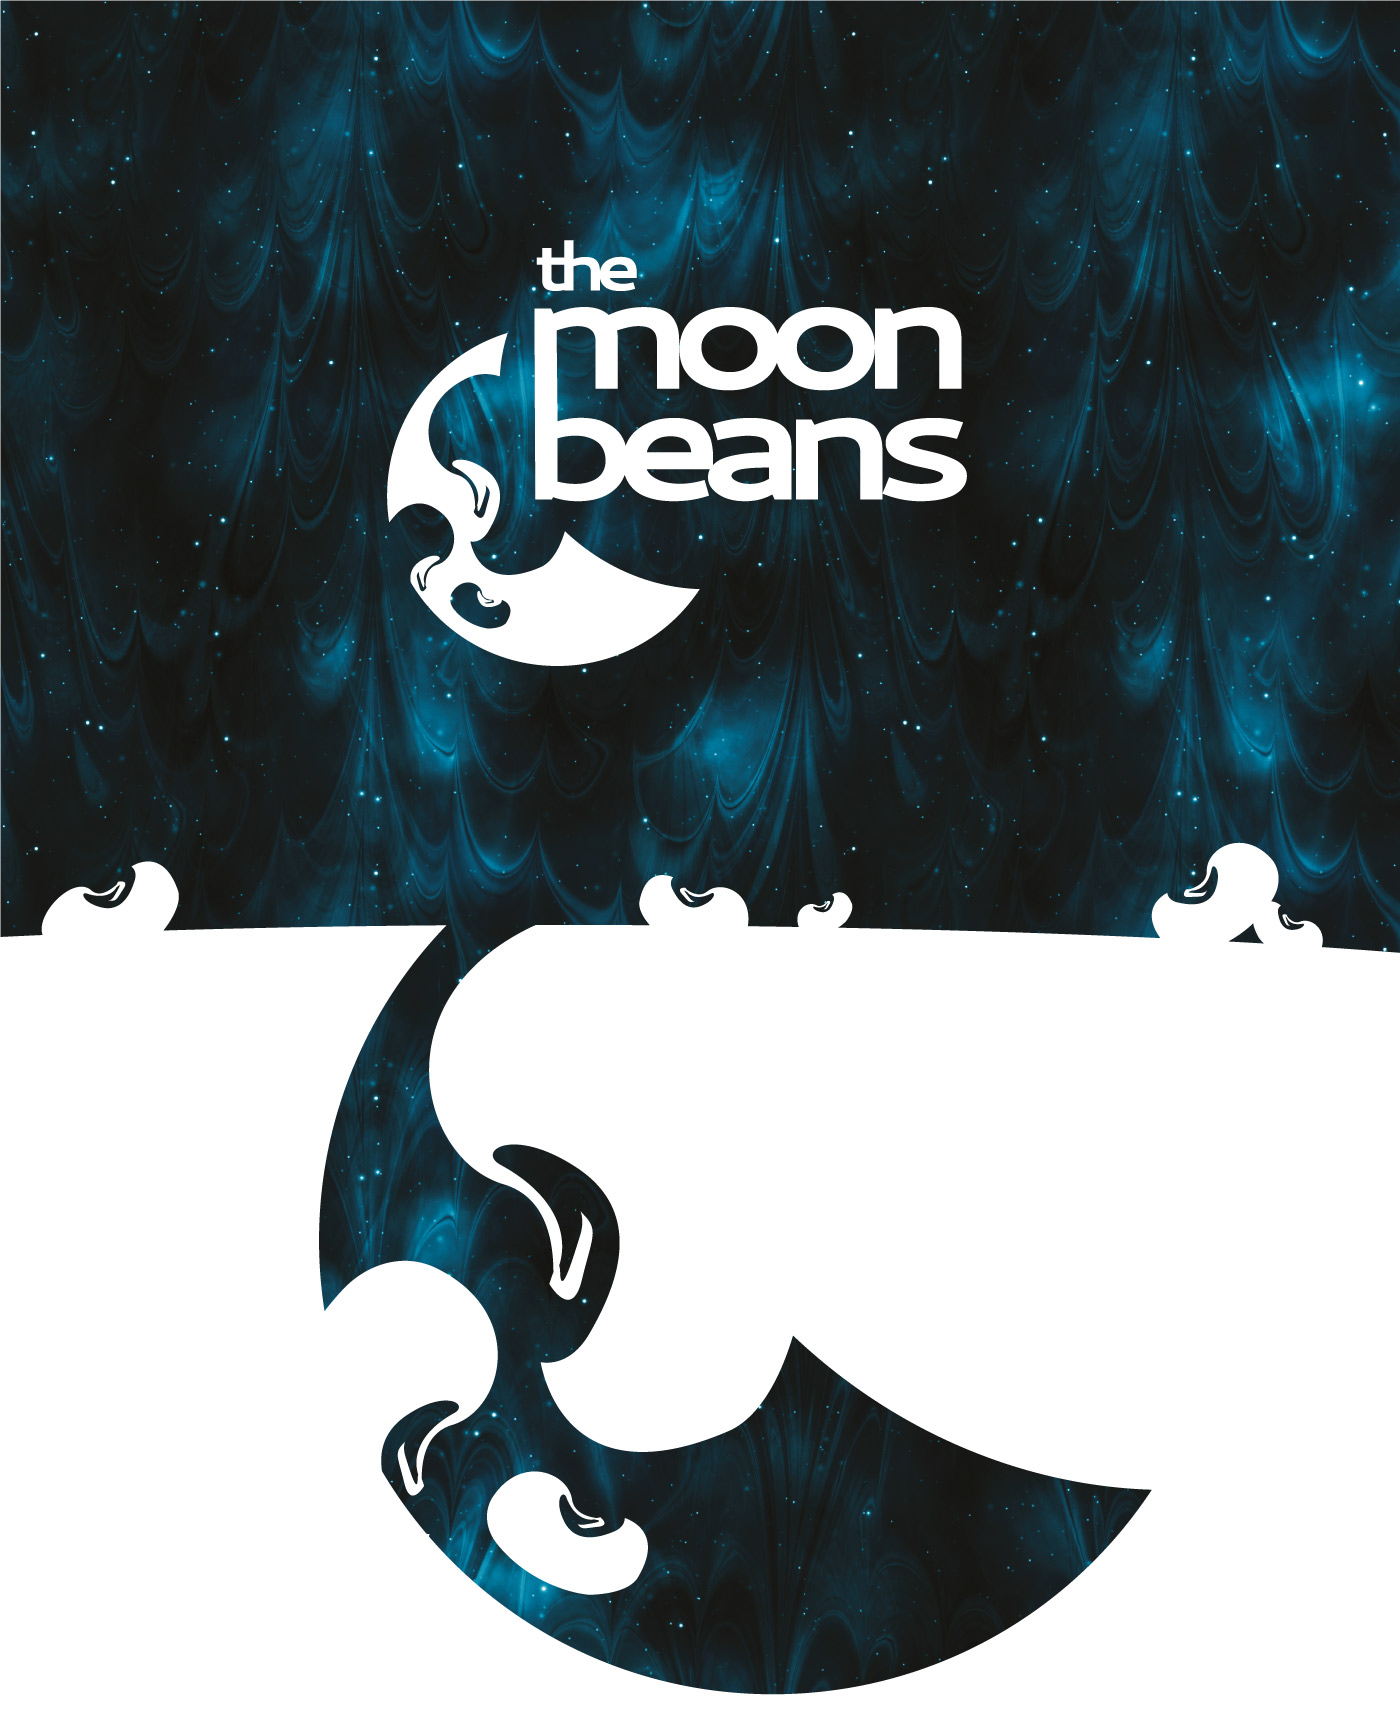 The Moonbeans logo